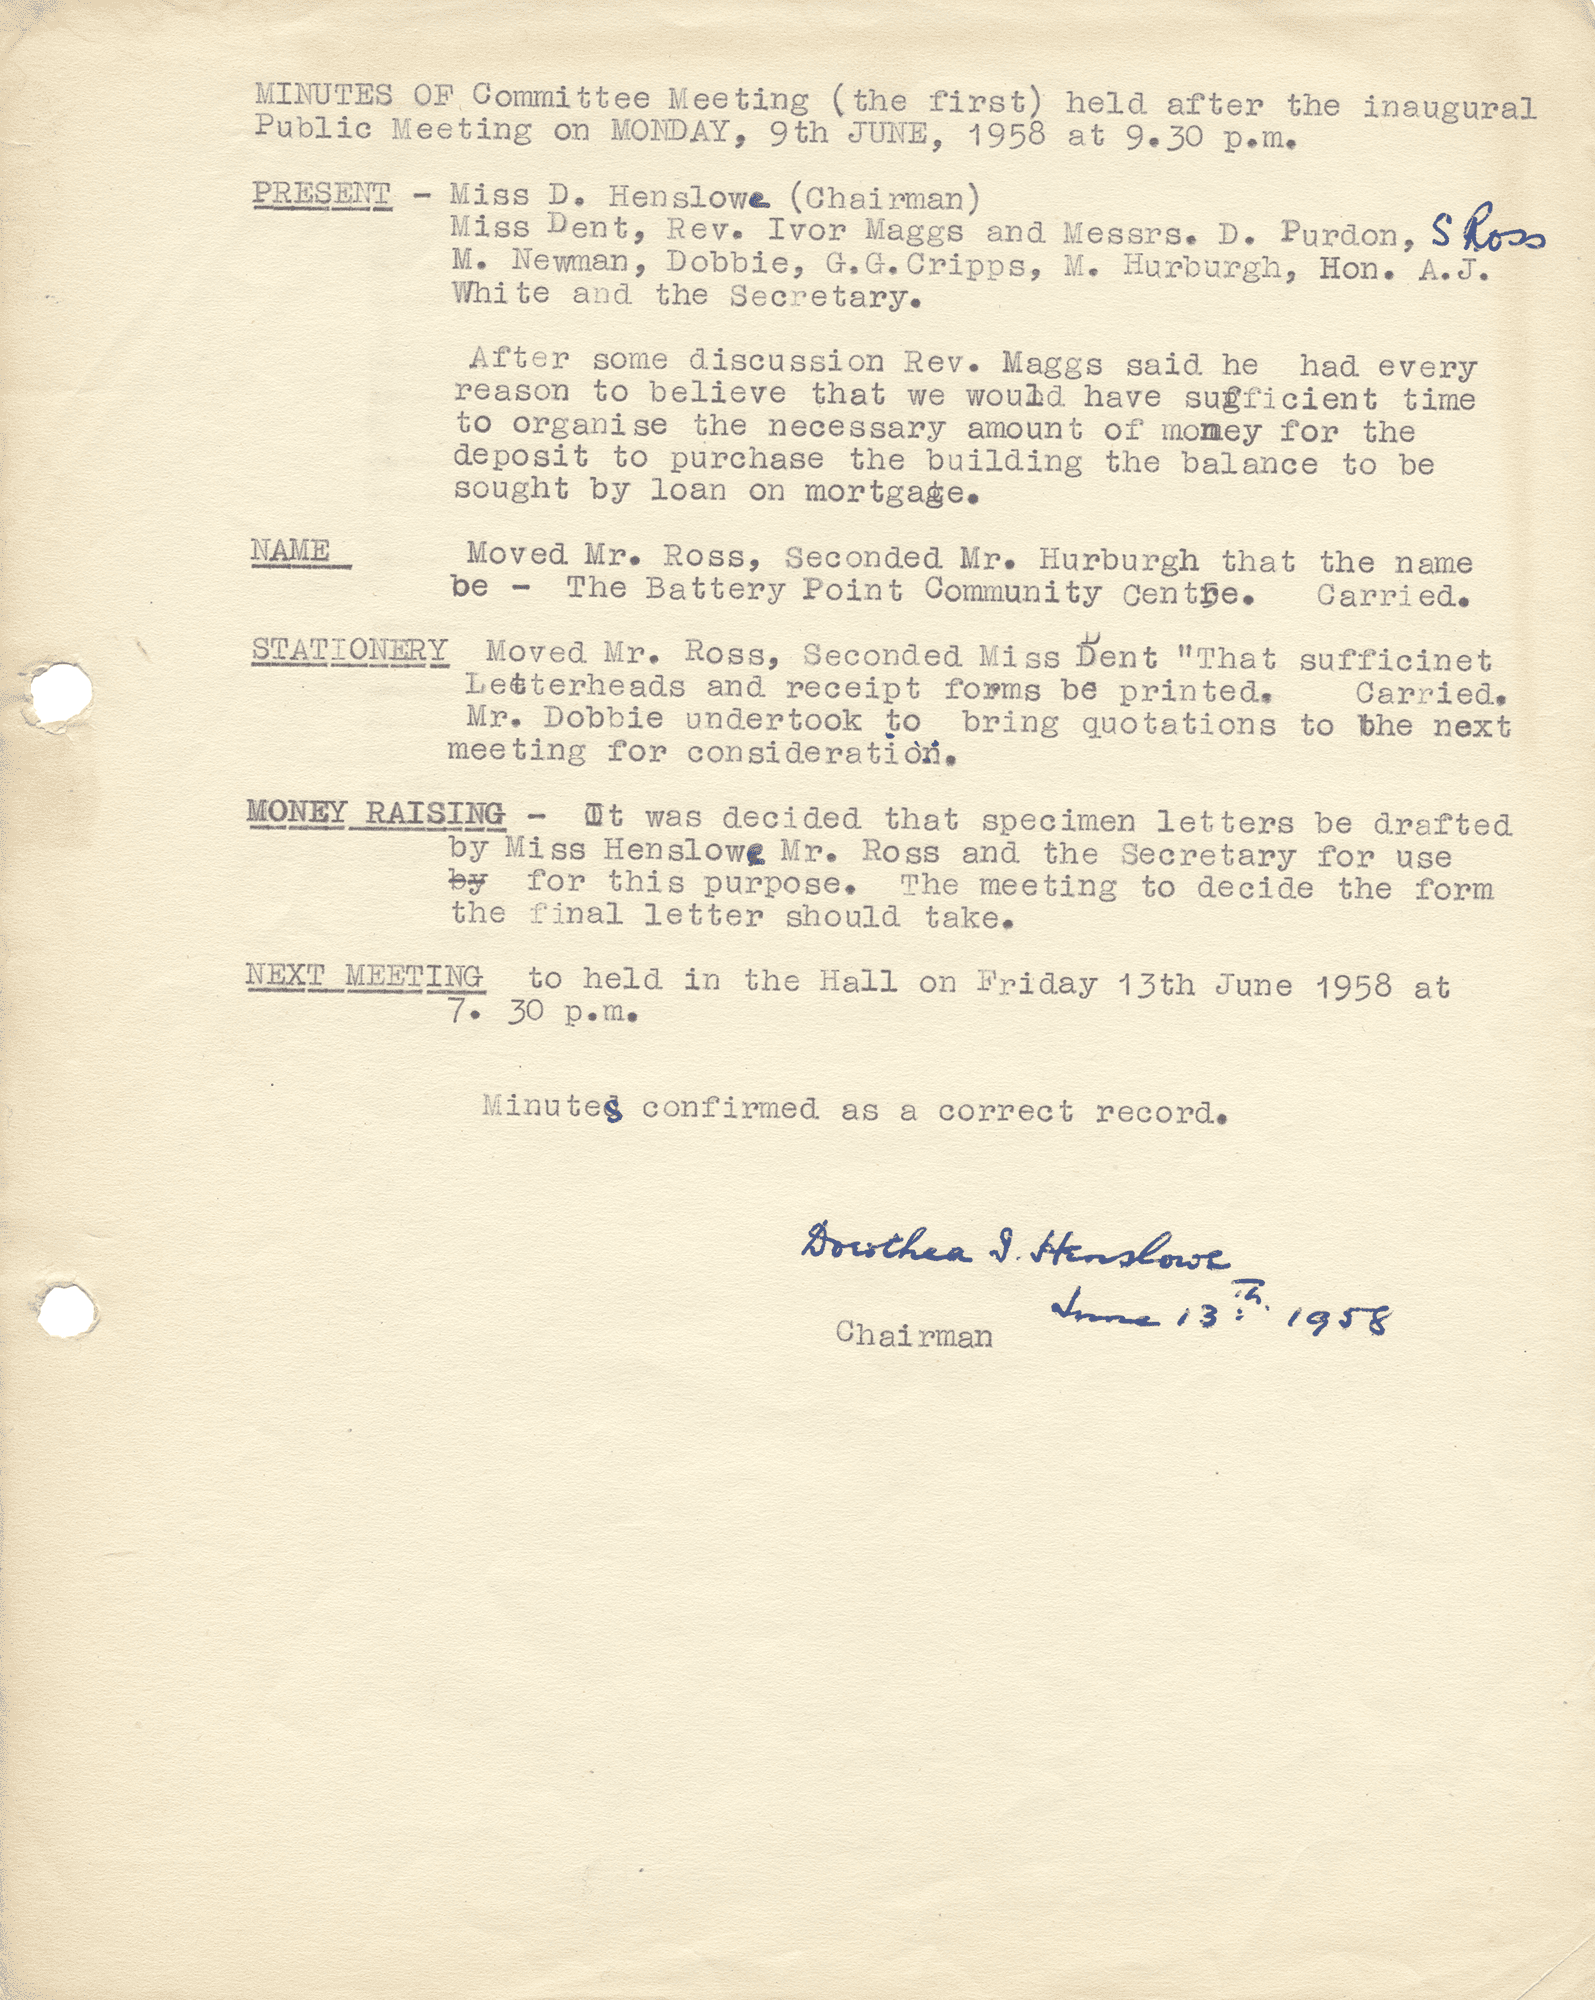 Minutes of First Committee Meeting